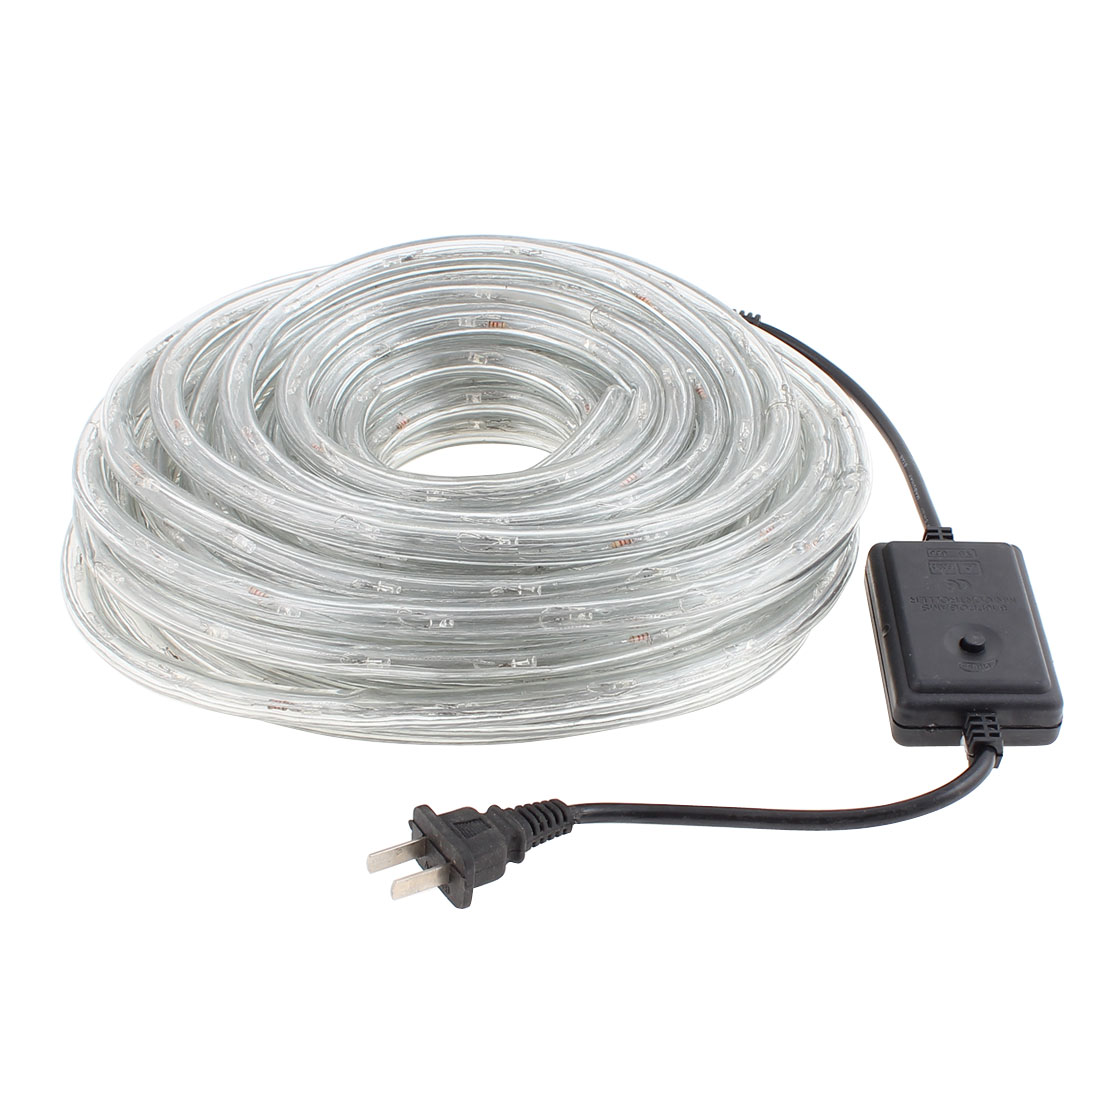 AC 110V US Plug 2 Wire Round Warm White LED Tube Lights Signboard Outdoor 15 Meters